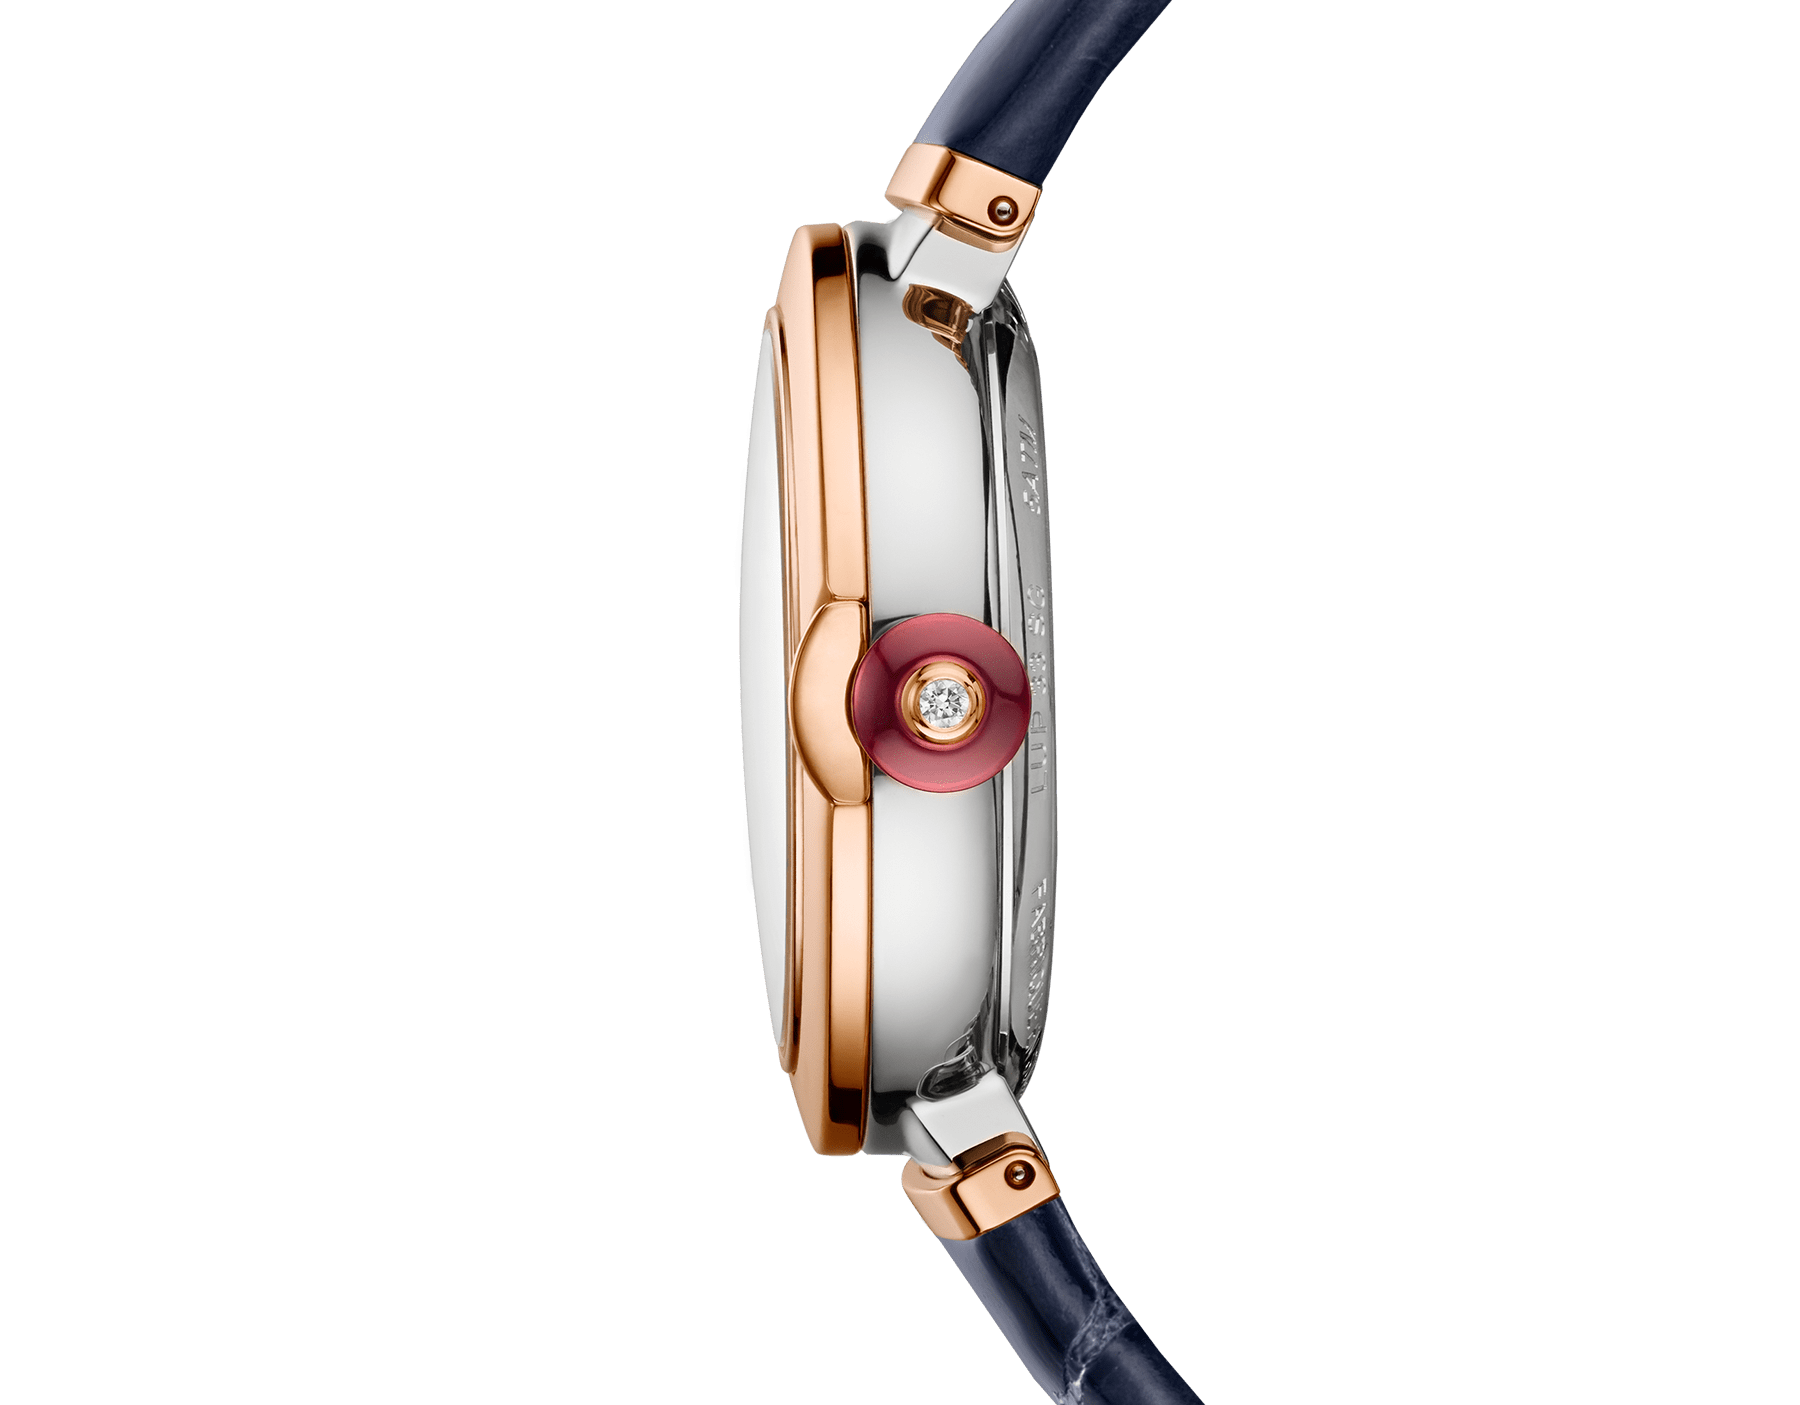 LVCEA watch with 18 kt rose gold and stainless steel case, white mother-of-pearl dial set with diamond indexes, date aperture and blue alligator bracelet. 102638 image 3